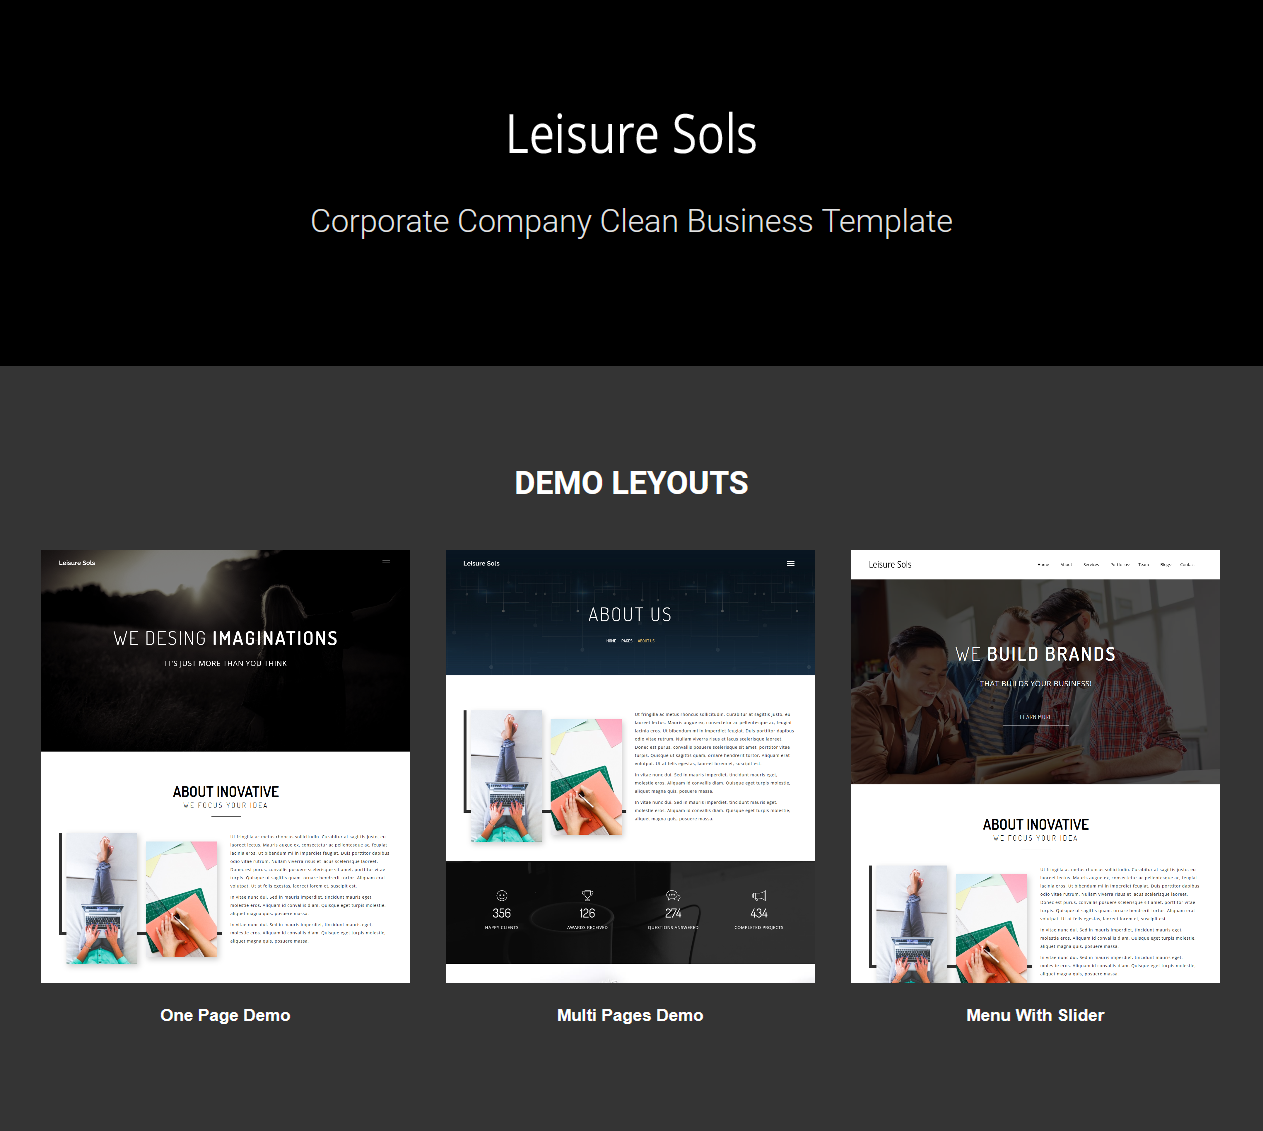 Leisure Sols Corporate Business Template - 3